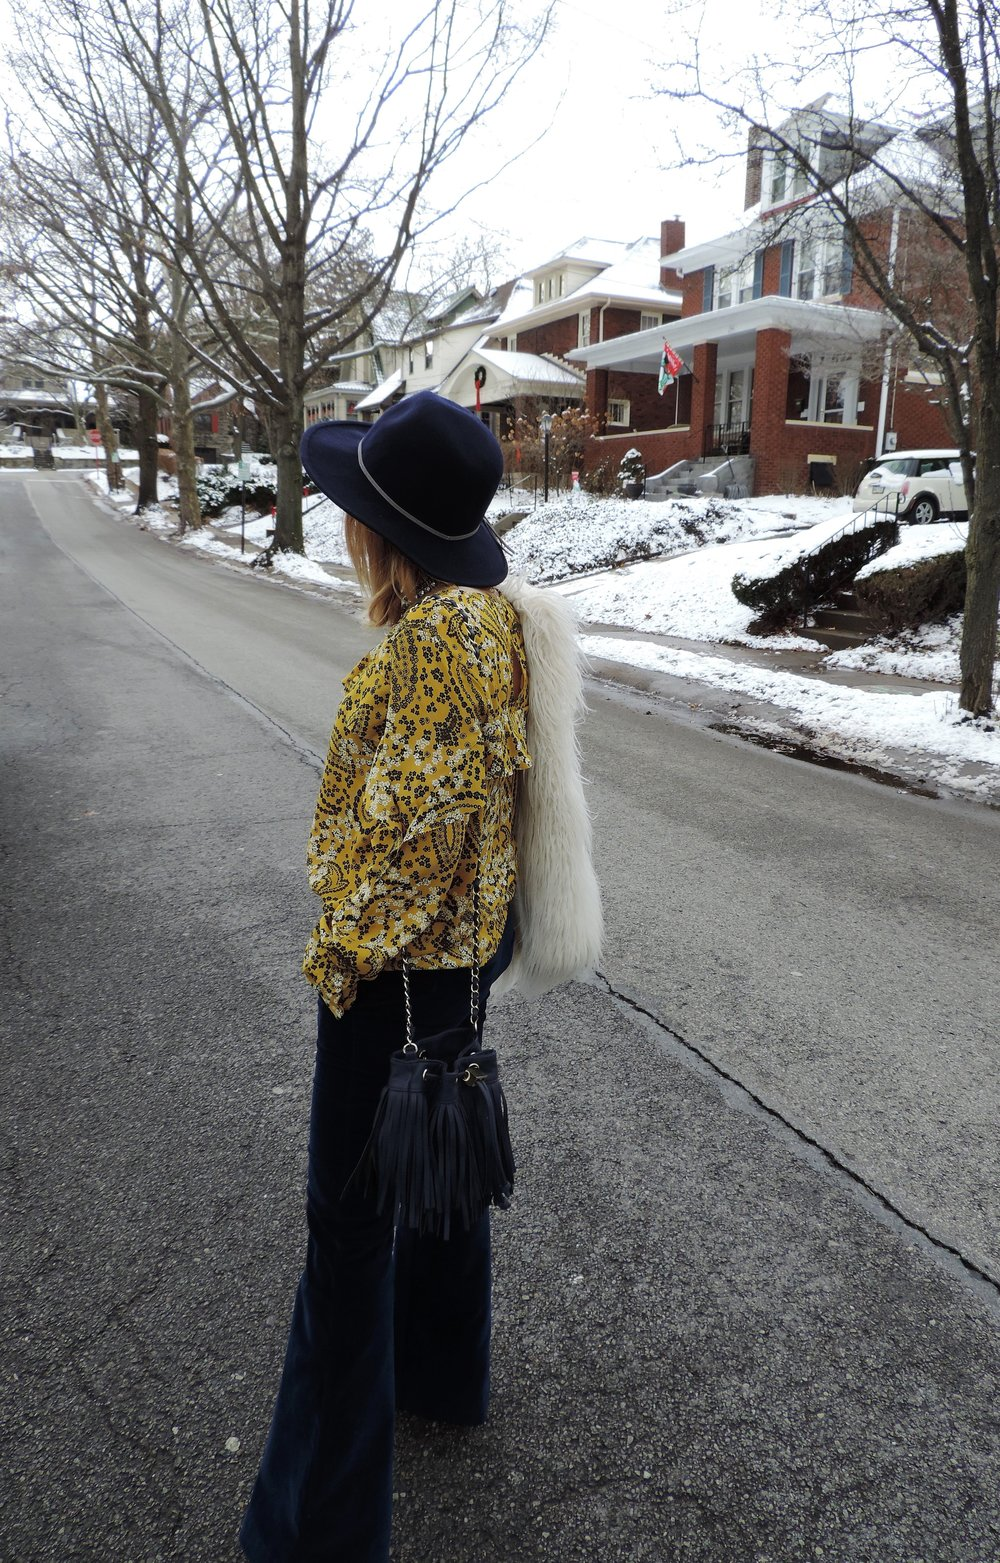 the perfect outfit for a dreary winter day